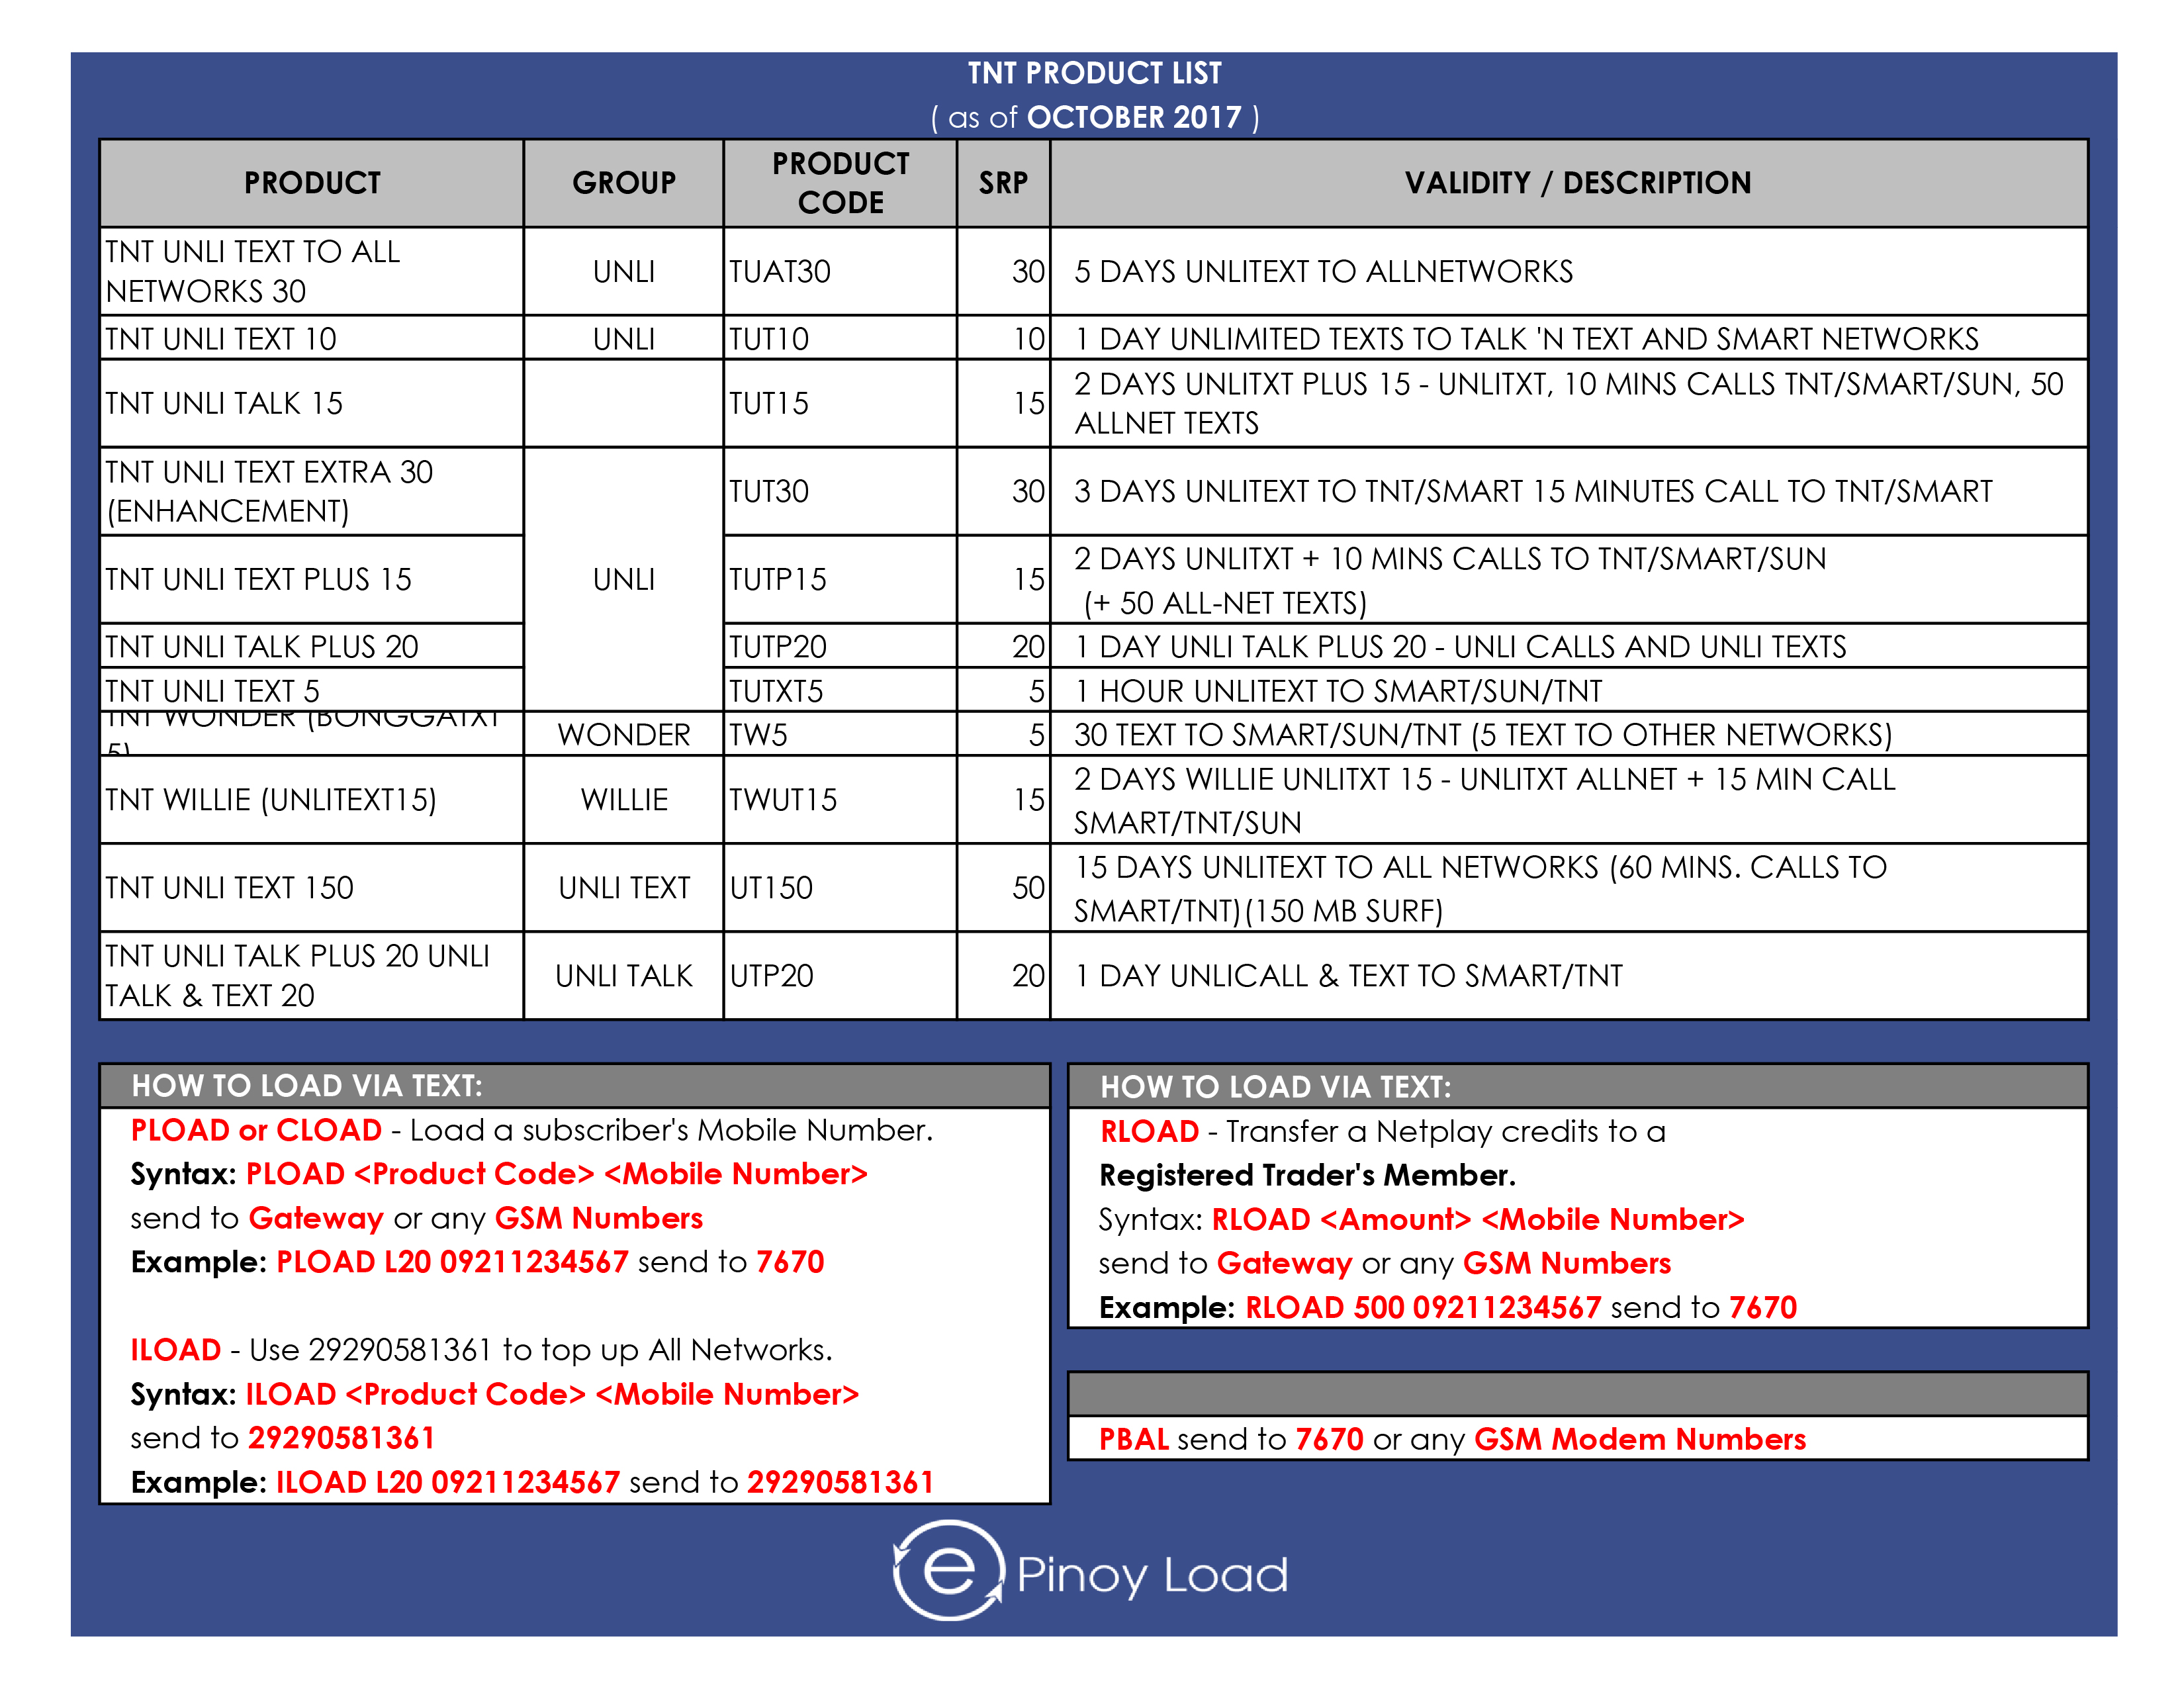 Epinoyload (All Product List) SMART_TNT (C)